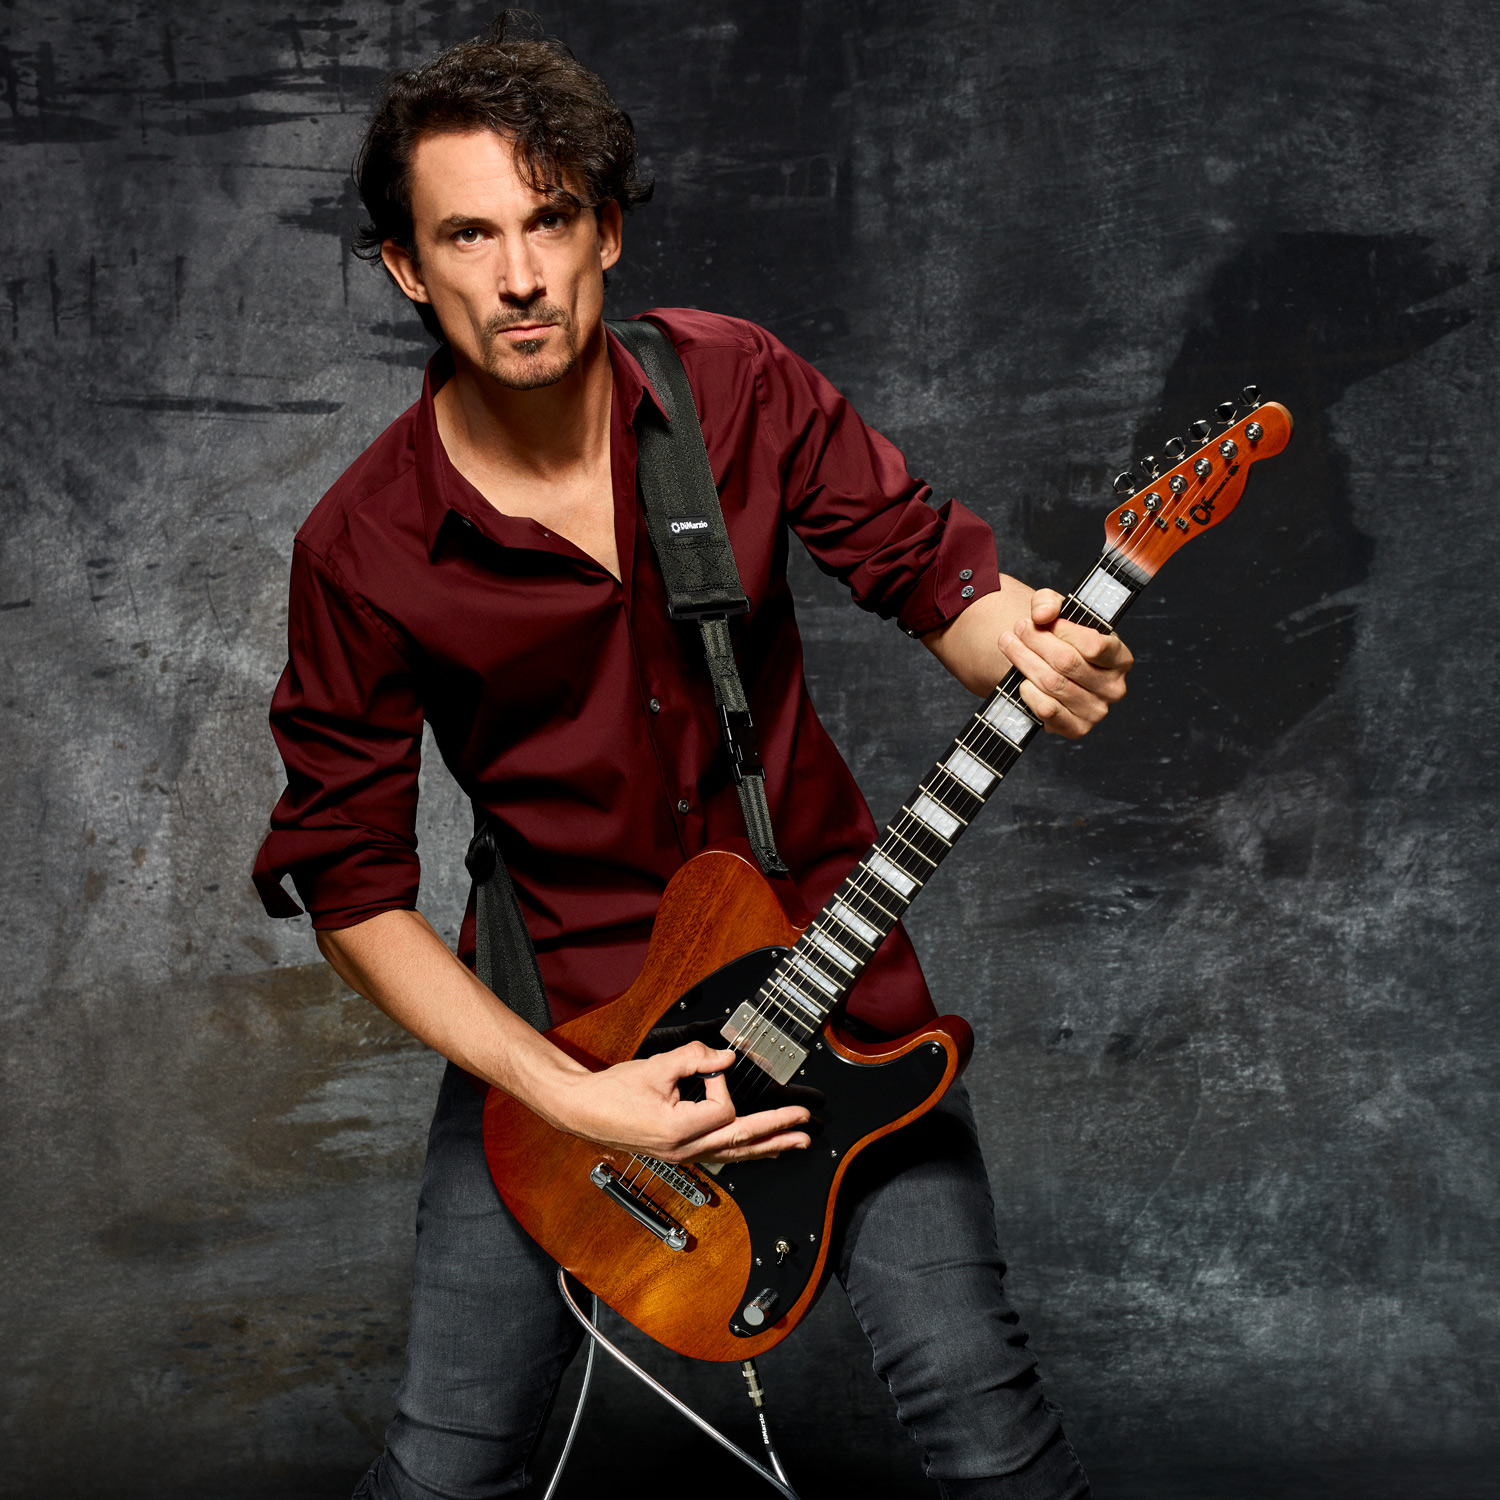 Joe Duplantier plays DiMarzio